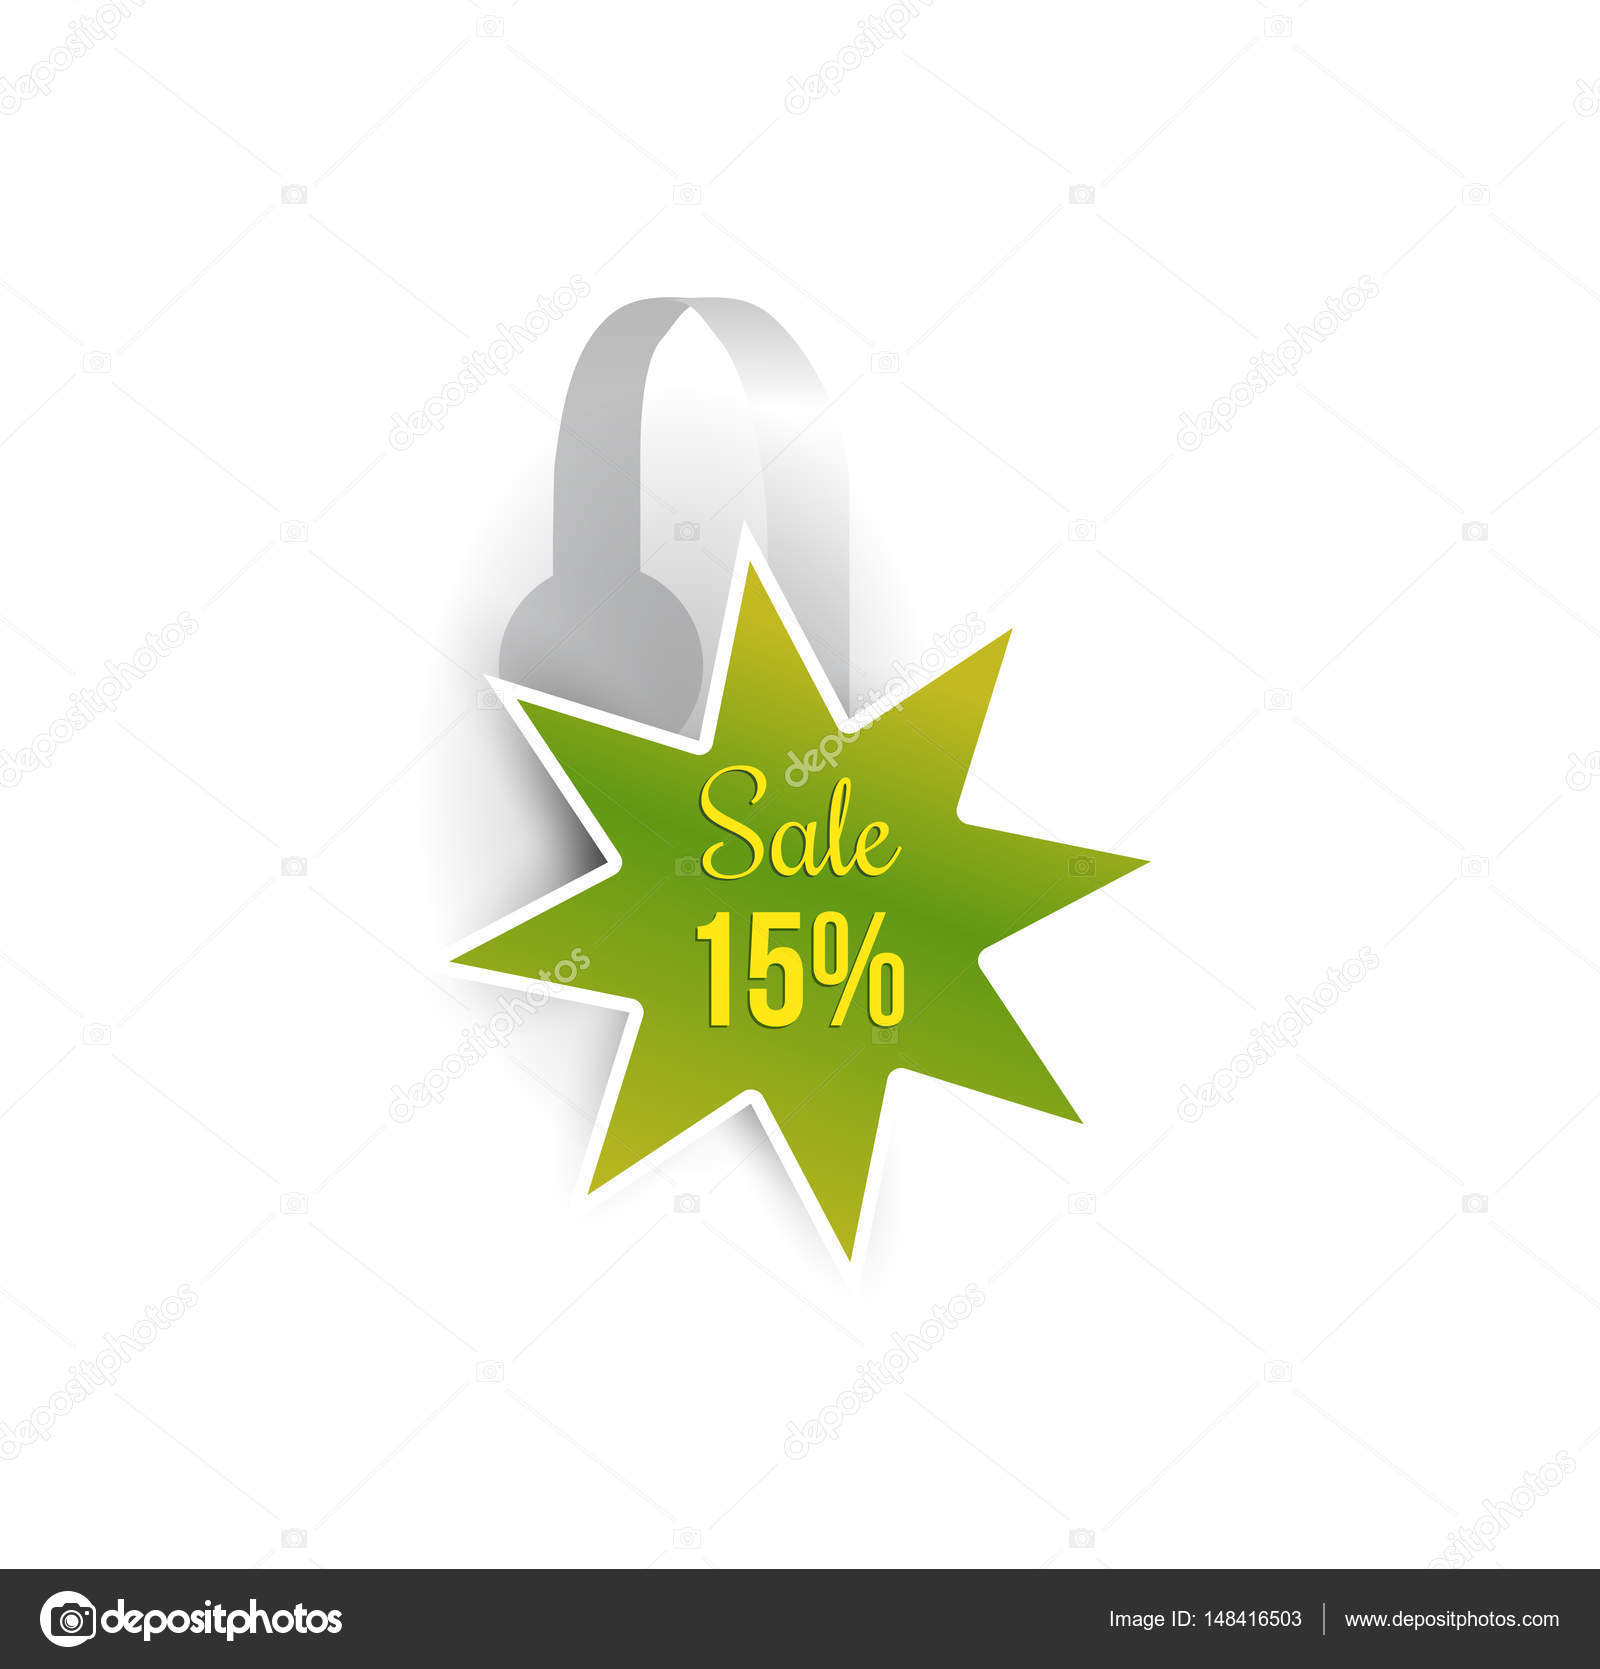 Shelf Wobbler Discount Label Mockup Stock Vector C Ilonitta 148416503